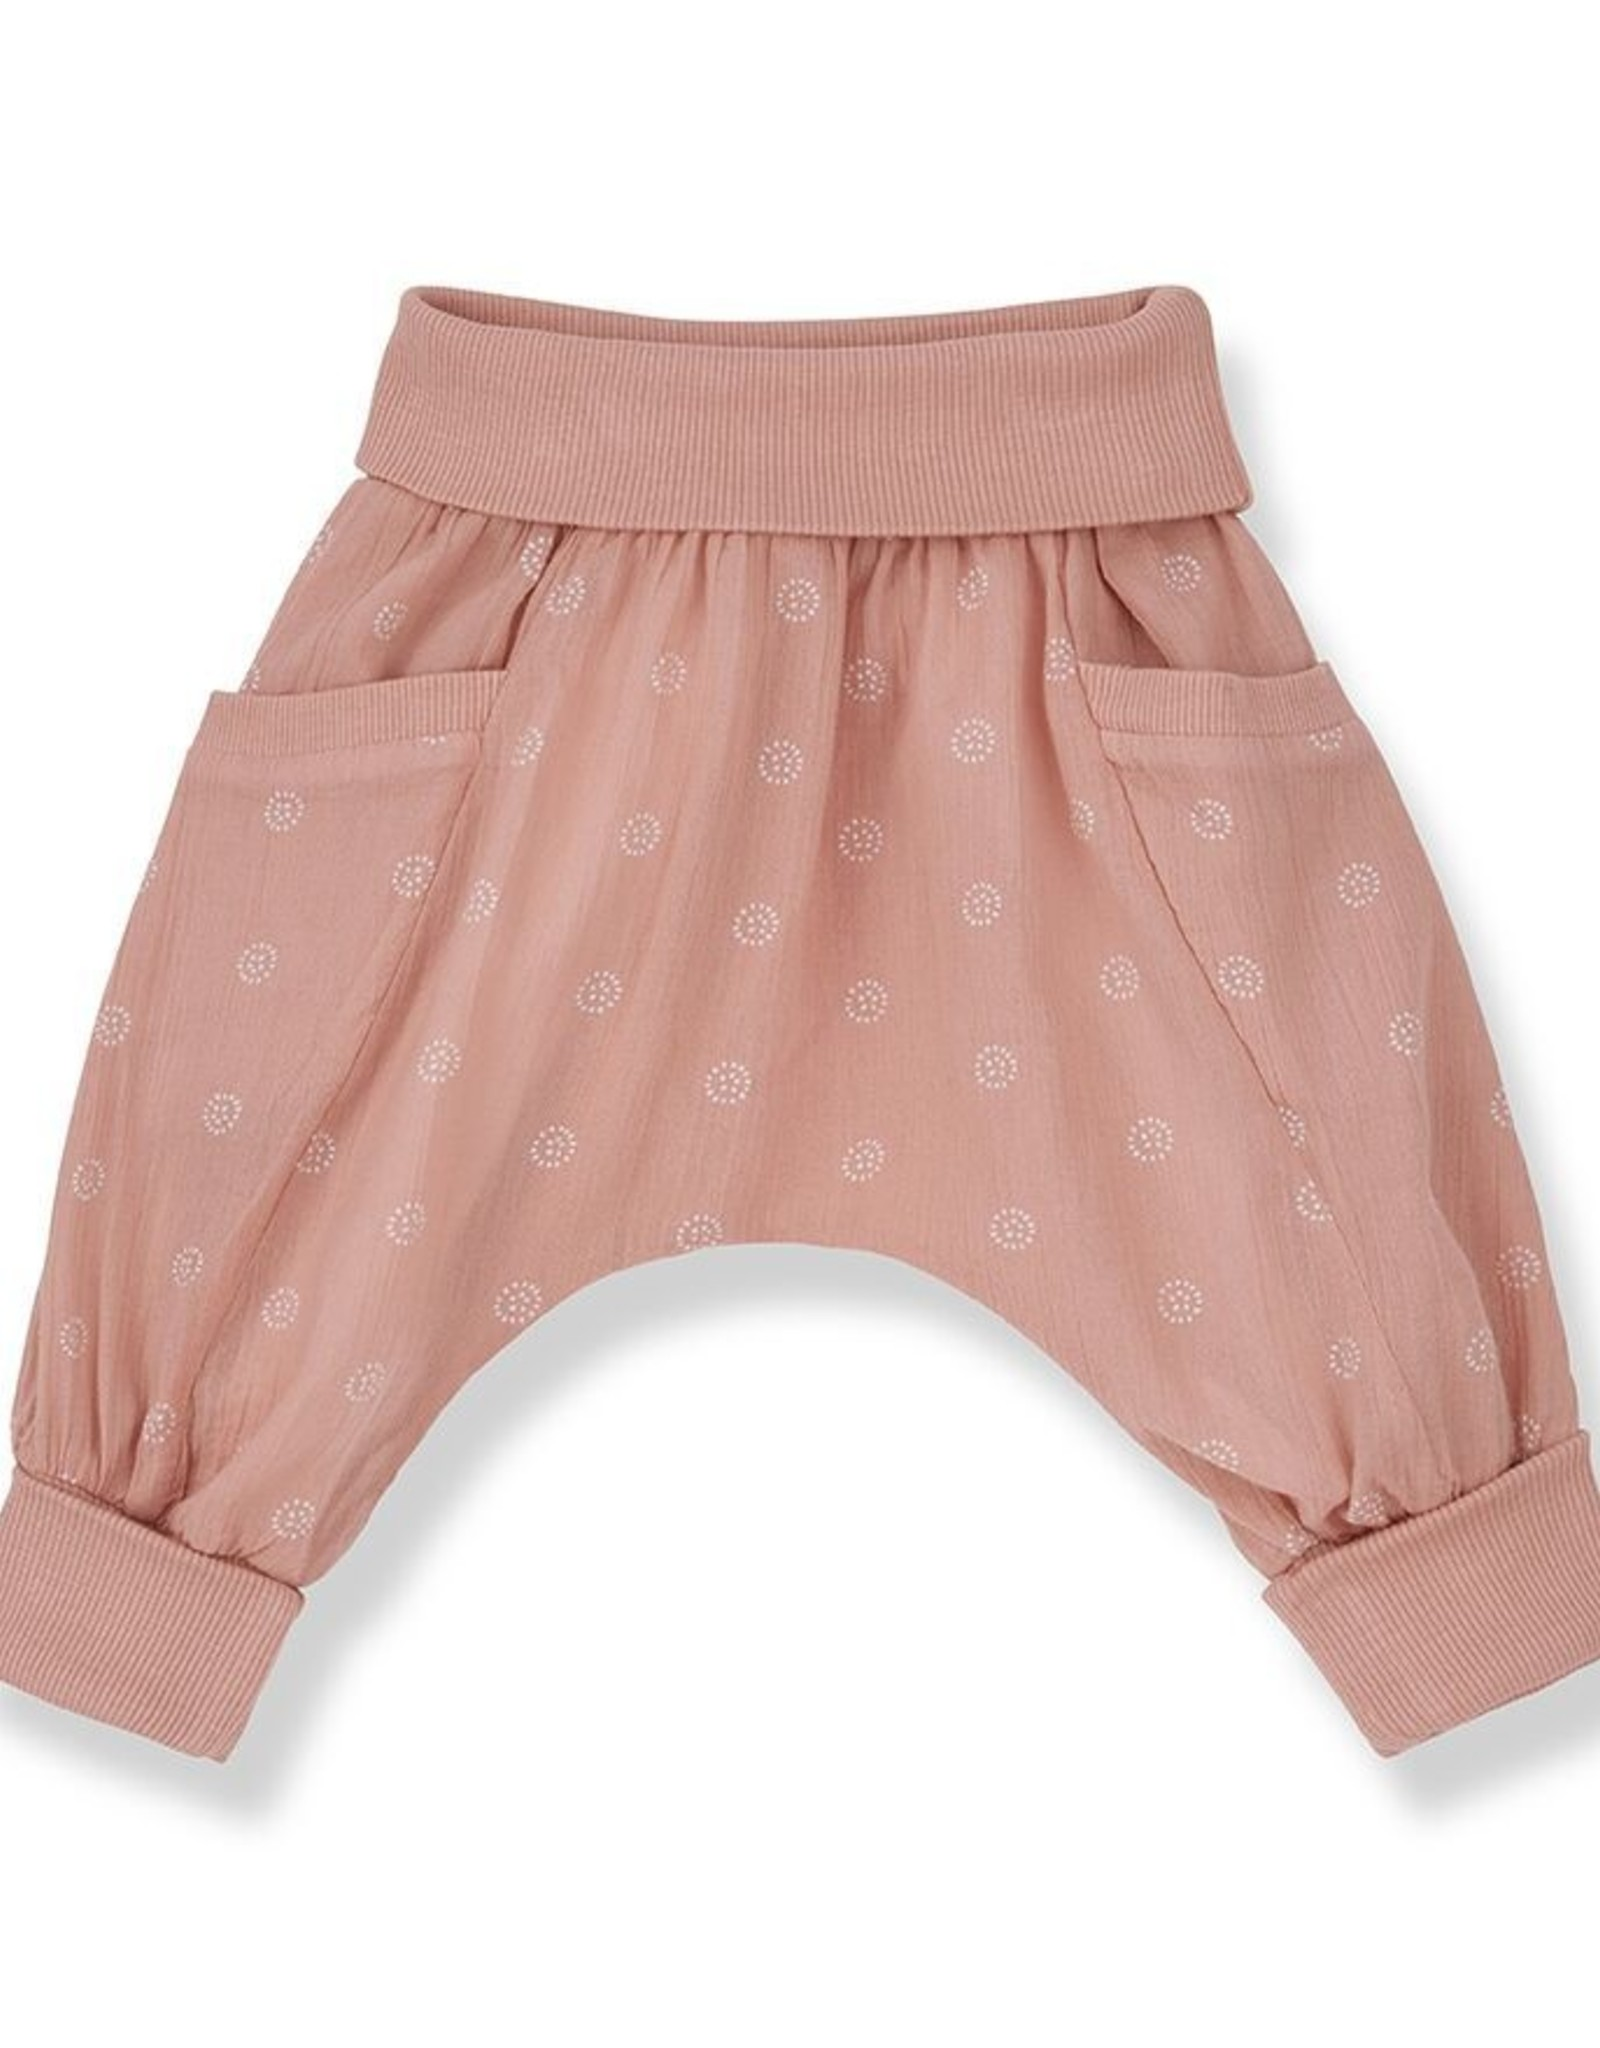 1+ in the Family gaia pants- rose